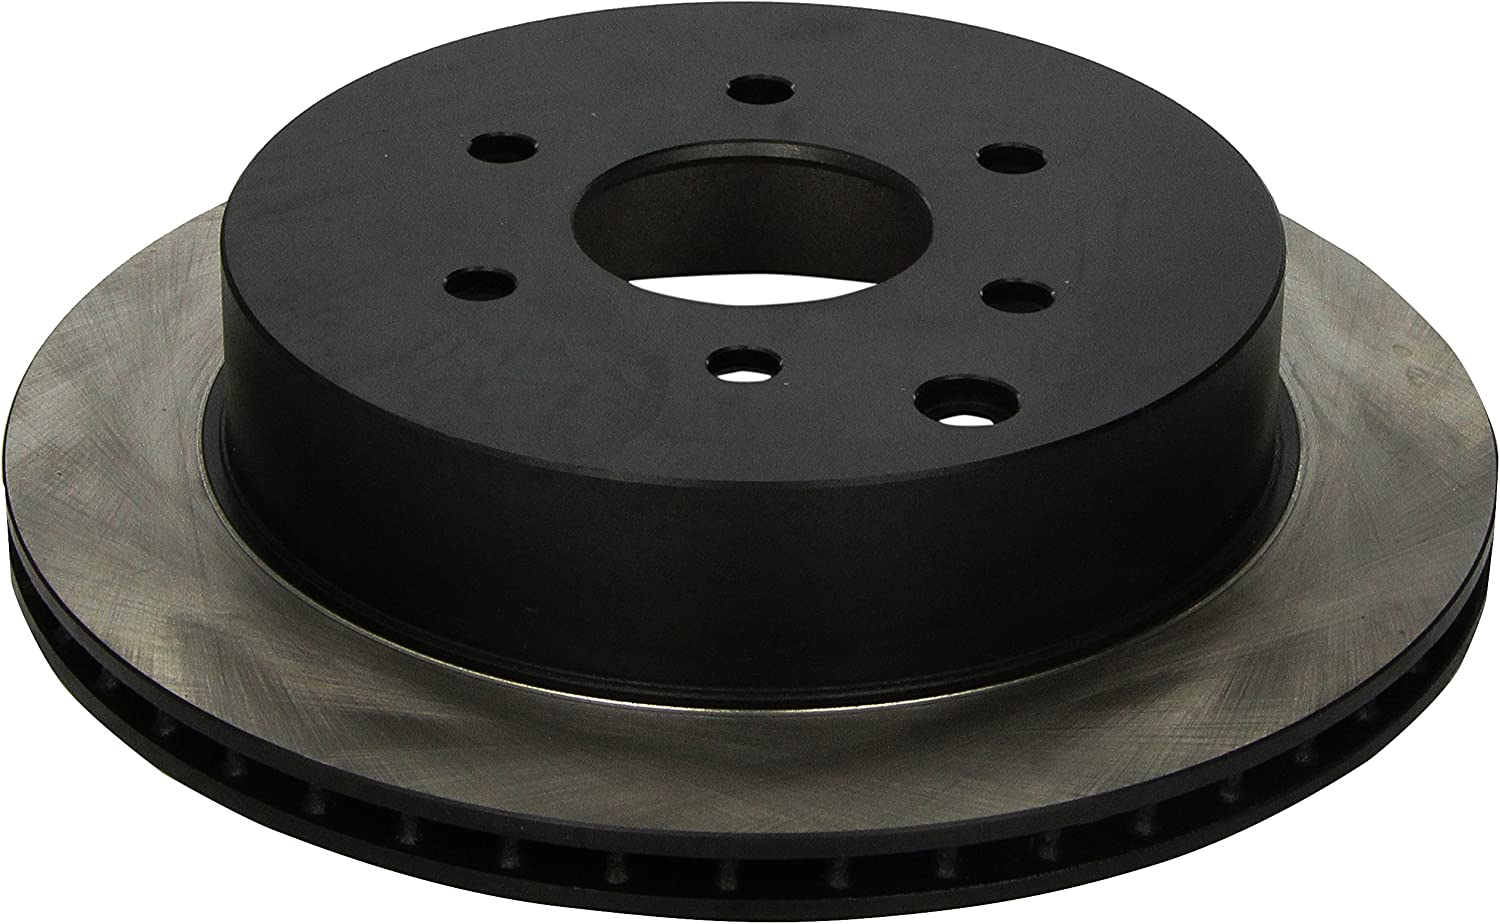 Centric Parts 120.42087 Premium Brake Rotor with E-Coating